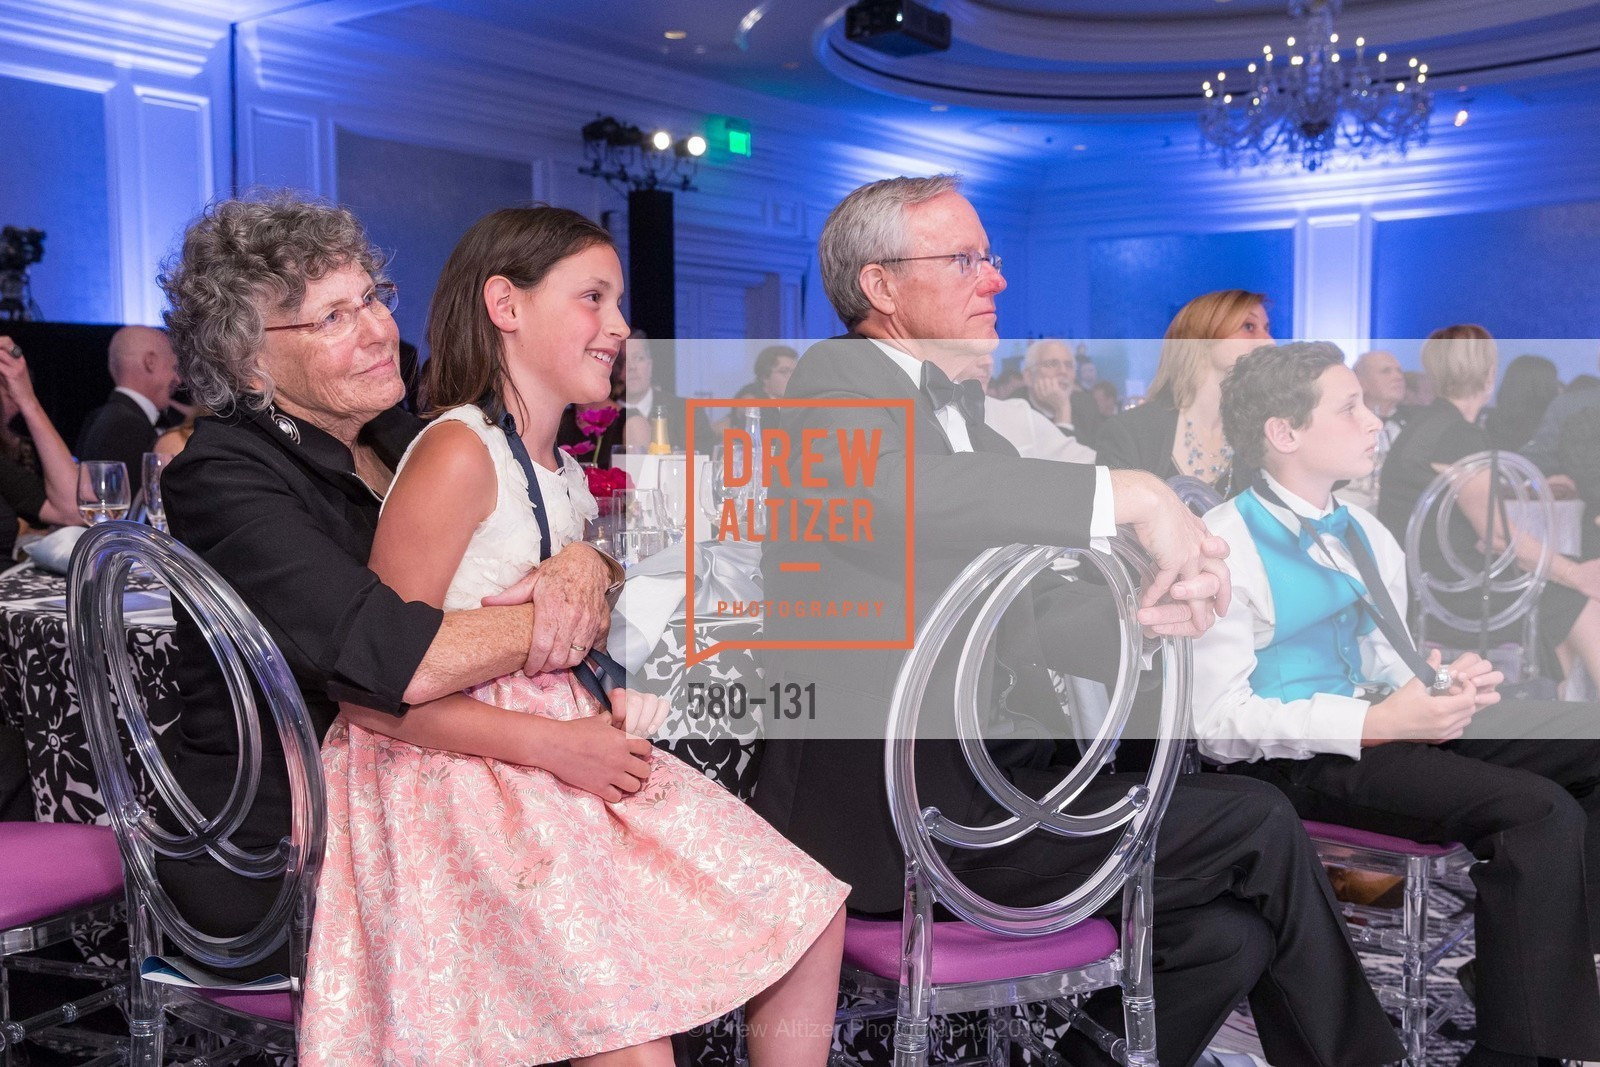 Sheri Coles, Dayton Coles, JUVENILE DIABETES RESEARCH FOUNDATION  Hope Gala, The Ritz-Carlton, May 29th, 2015,Drew Altizer, Drew Altizer Photography, full-service agency, private events, San Francisco photographer, photographer california